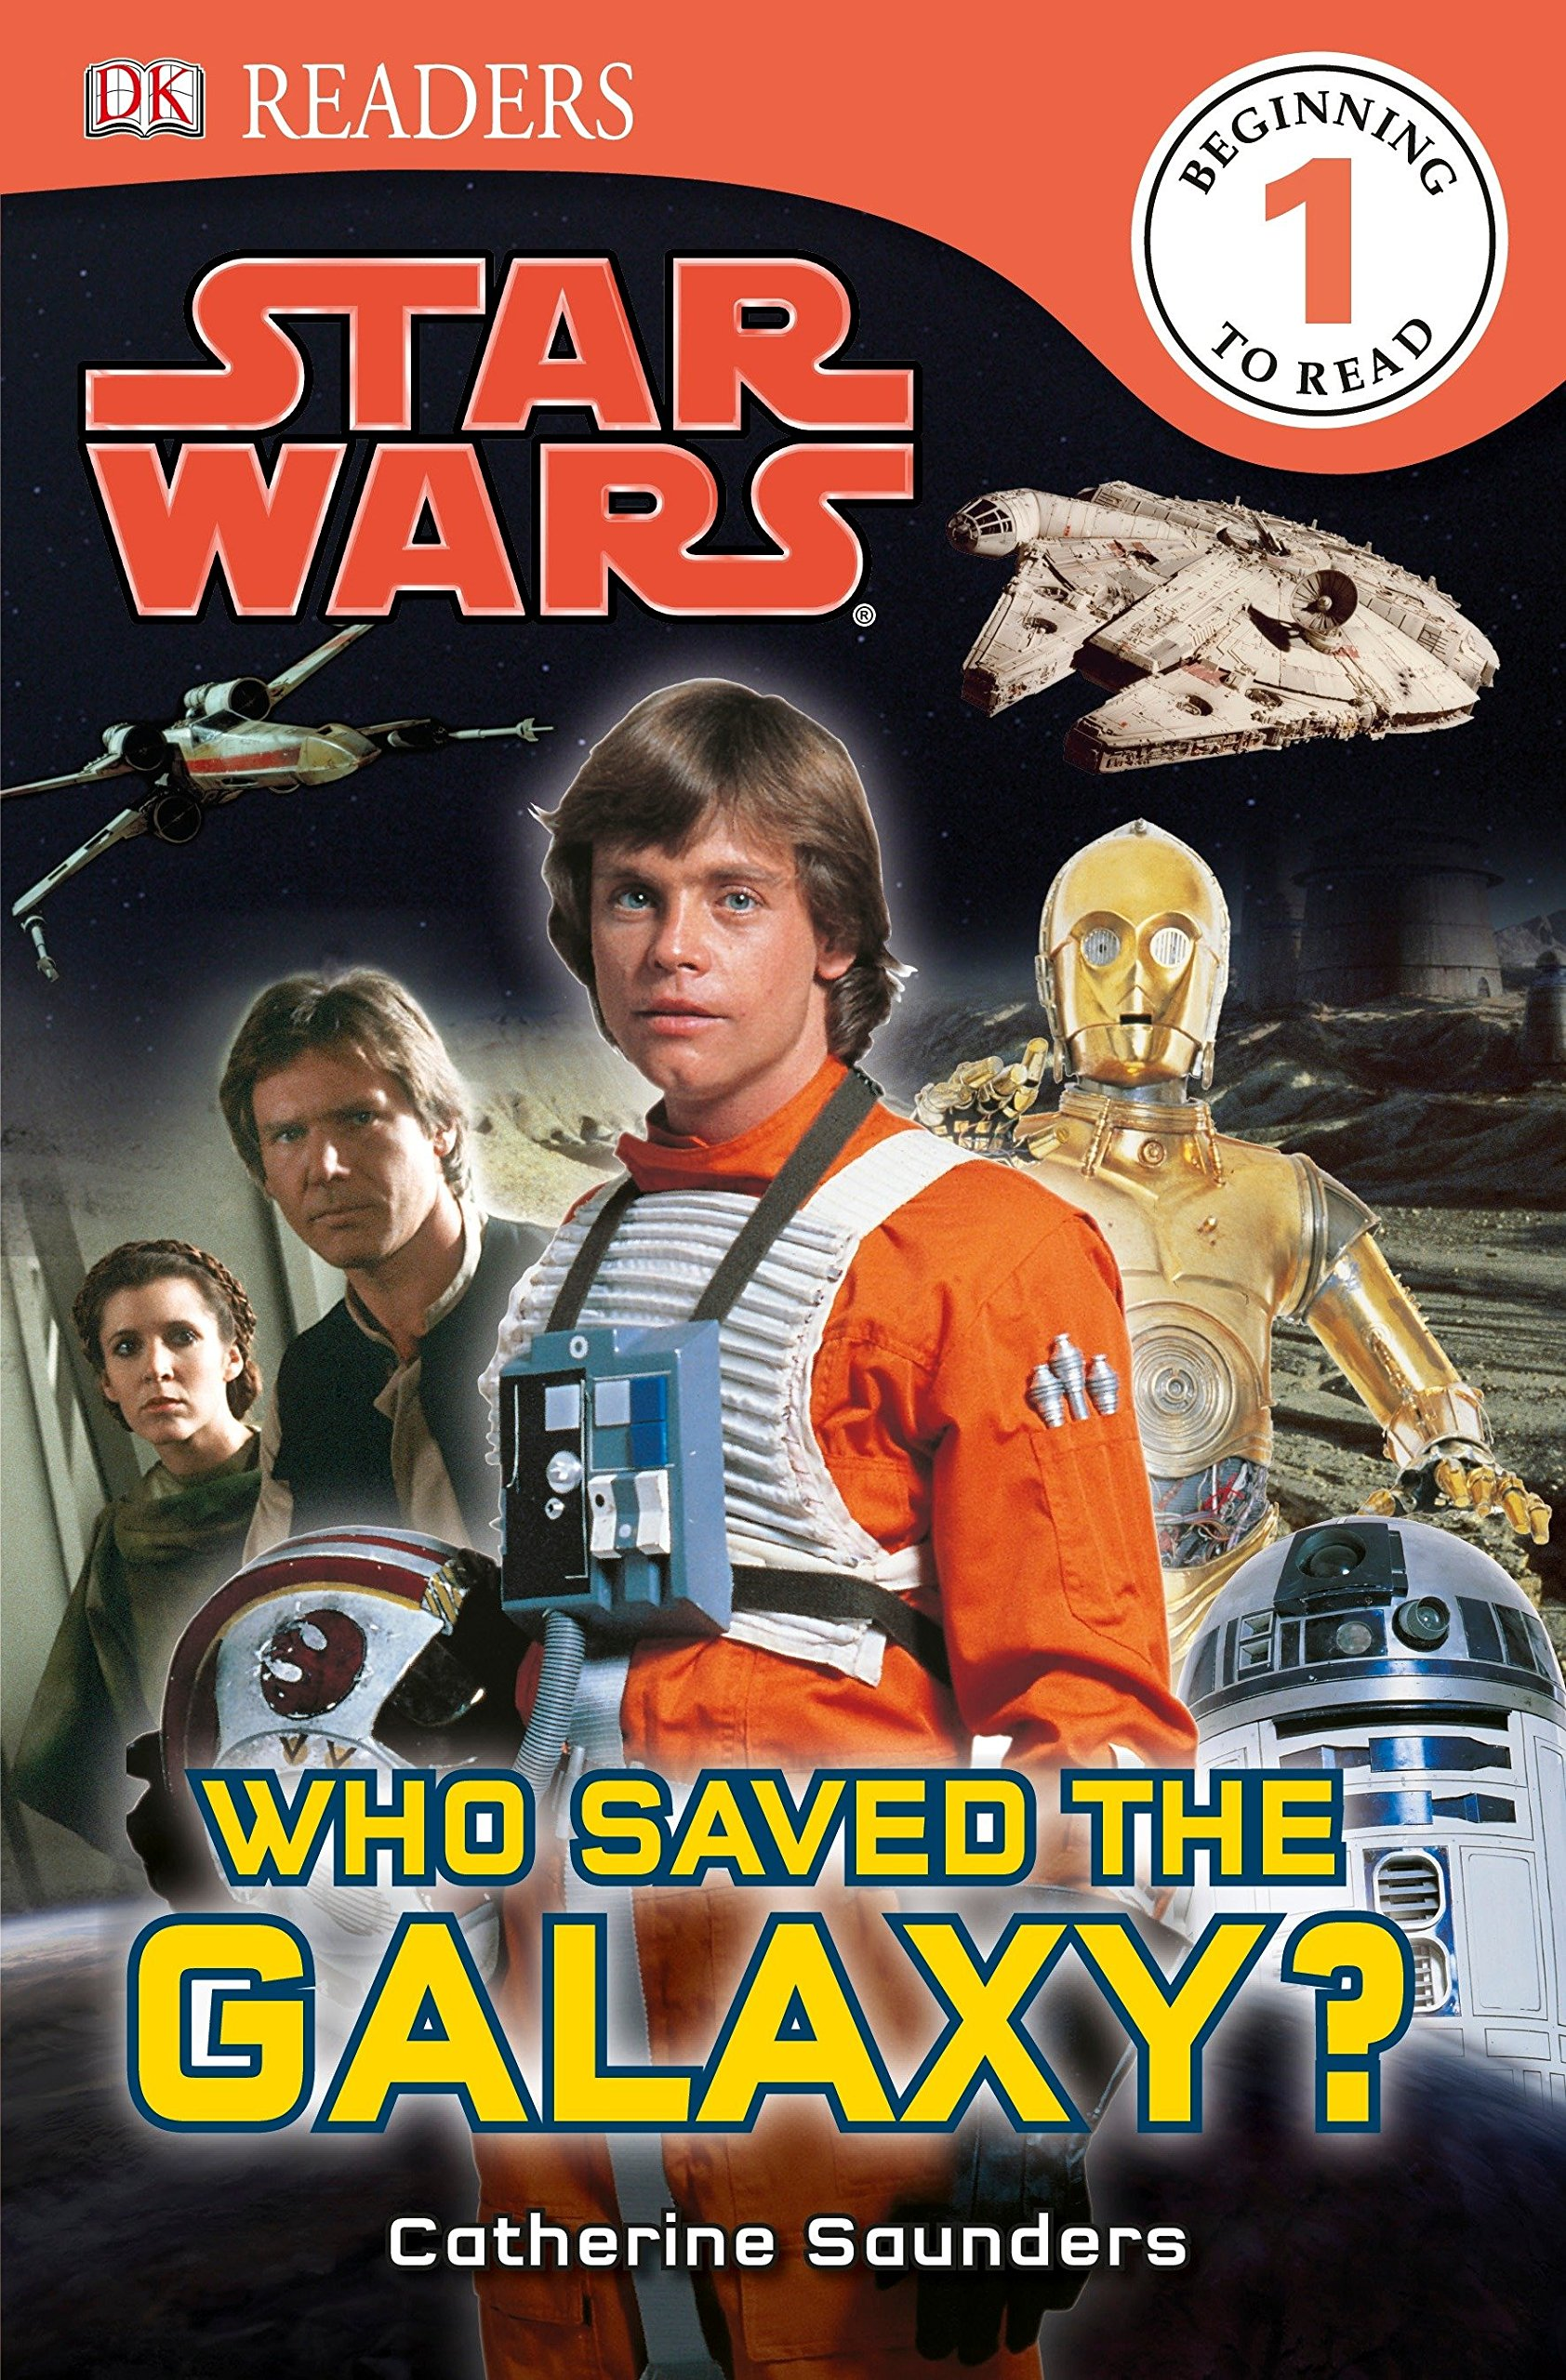 Star Wars: Who Saved the Galaxy?